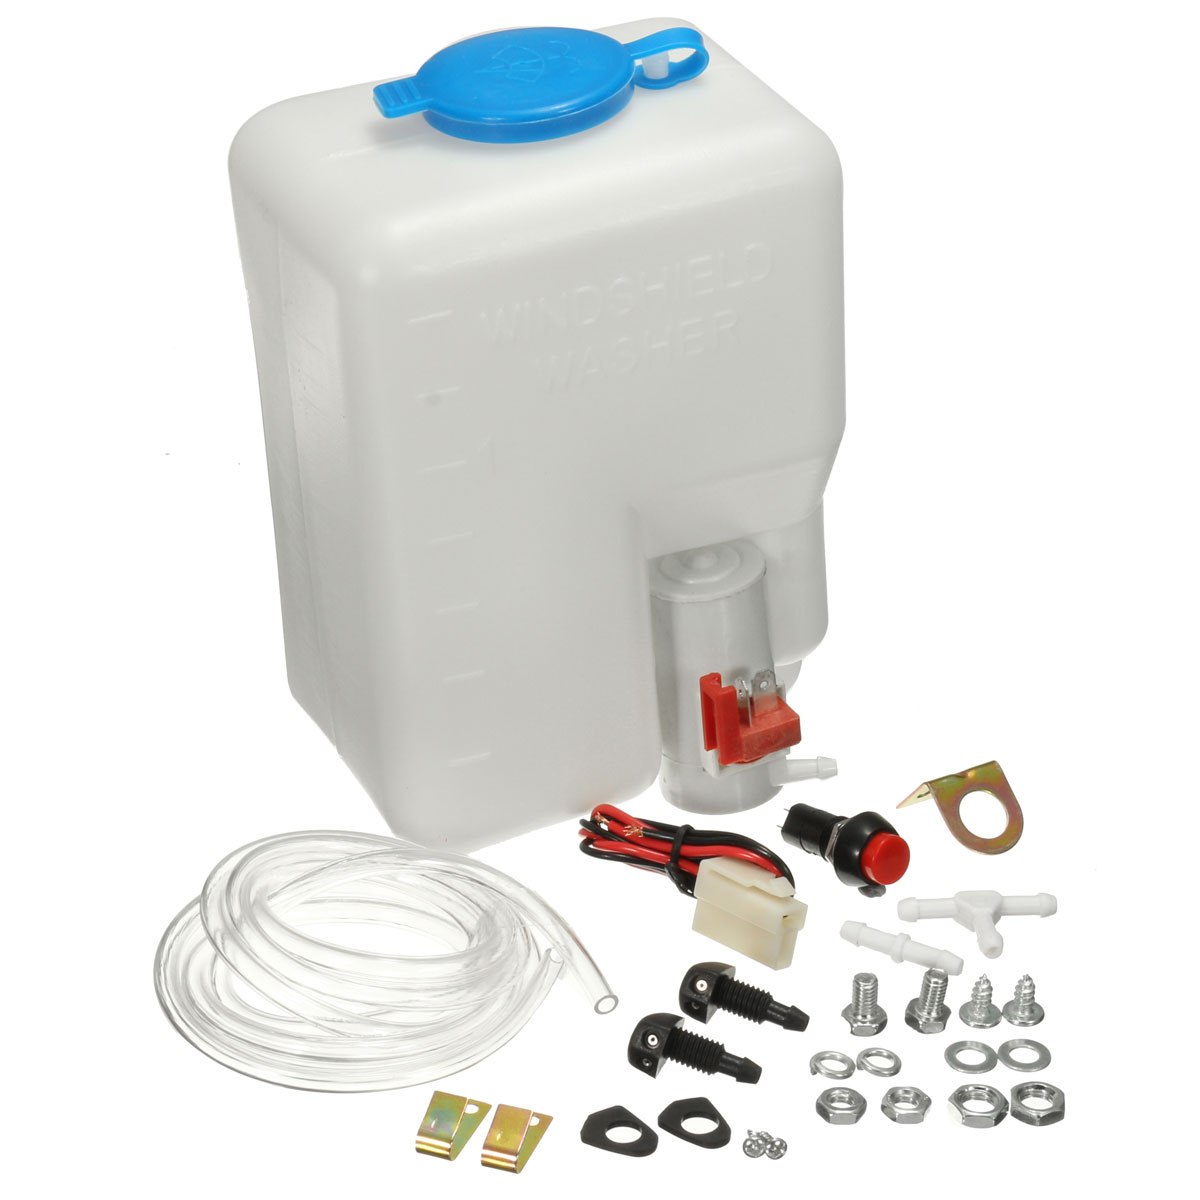 Bottle-Kit Washer Reservoir-Pump 12V with Jet-Button-Switch 170KPA Car-Windshield Universal title=